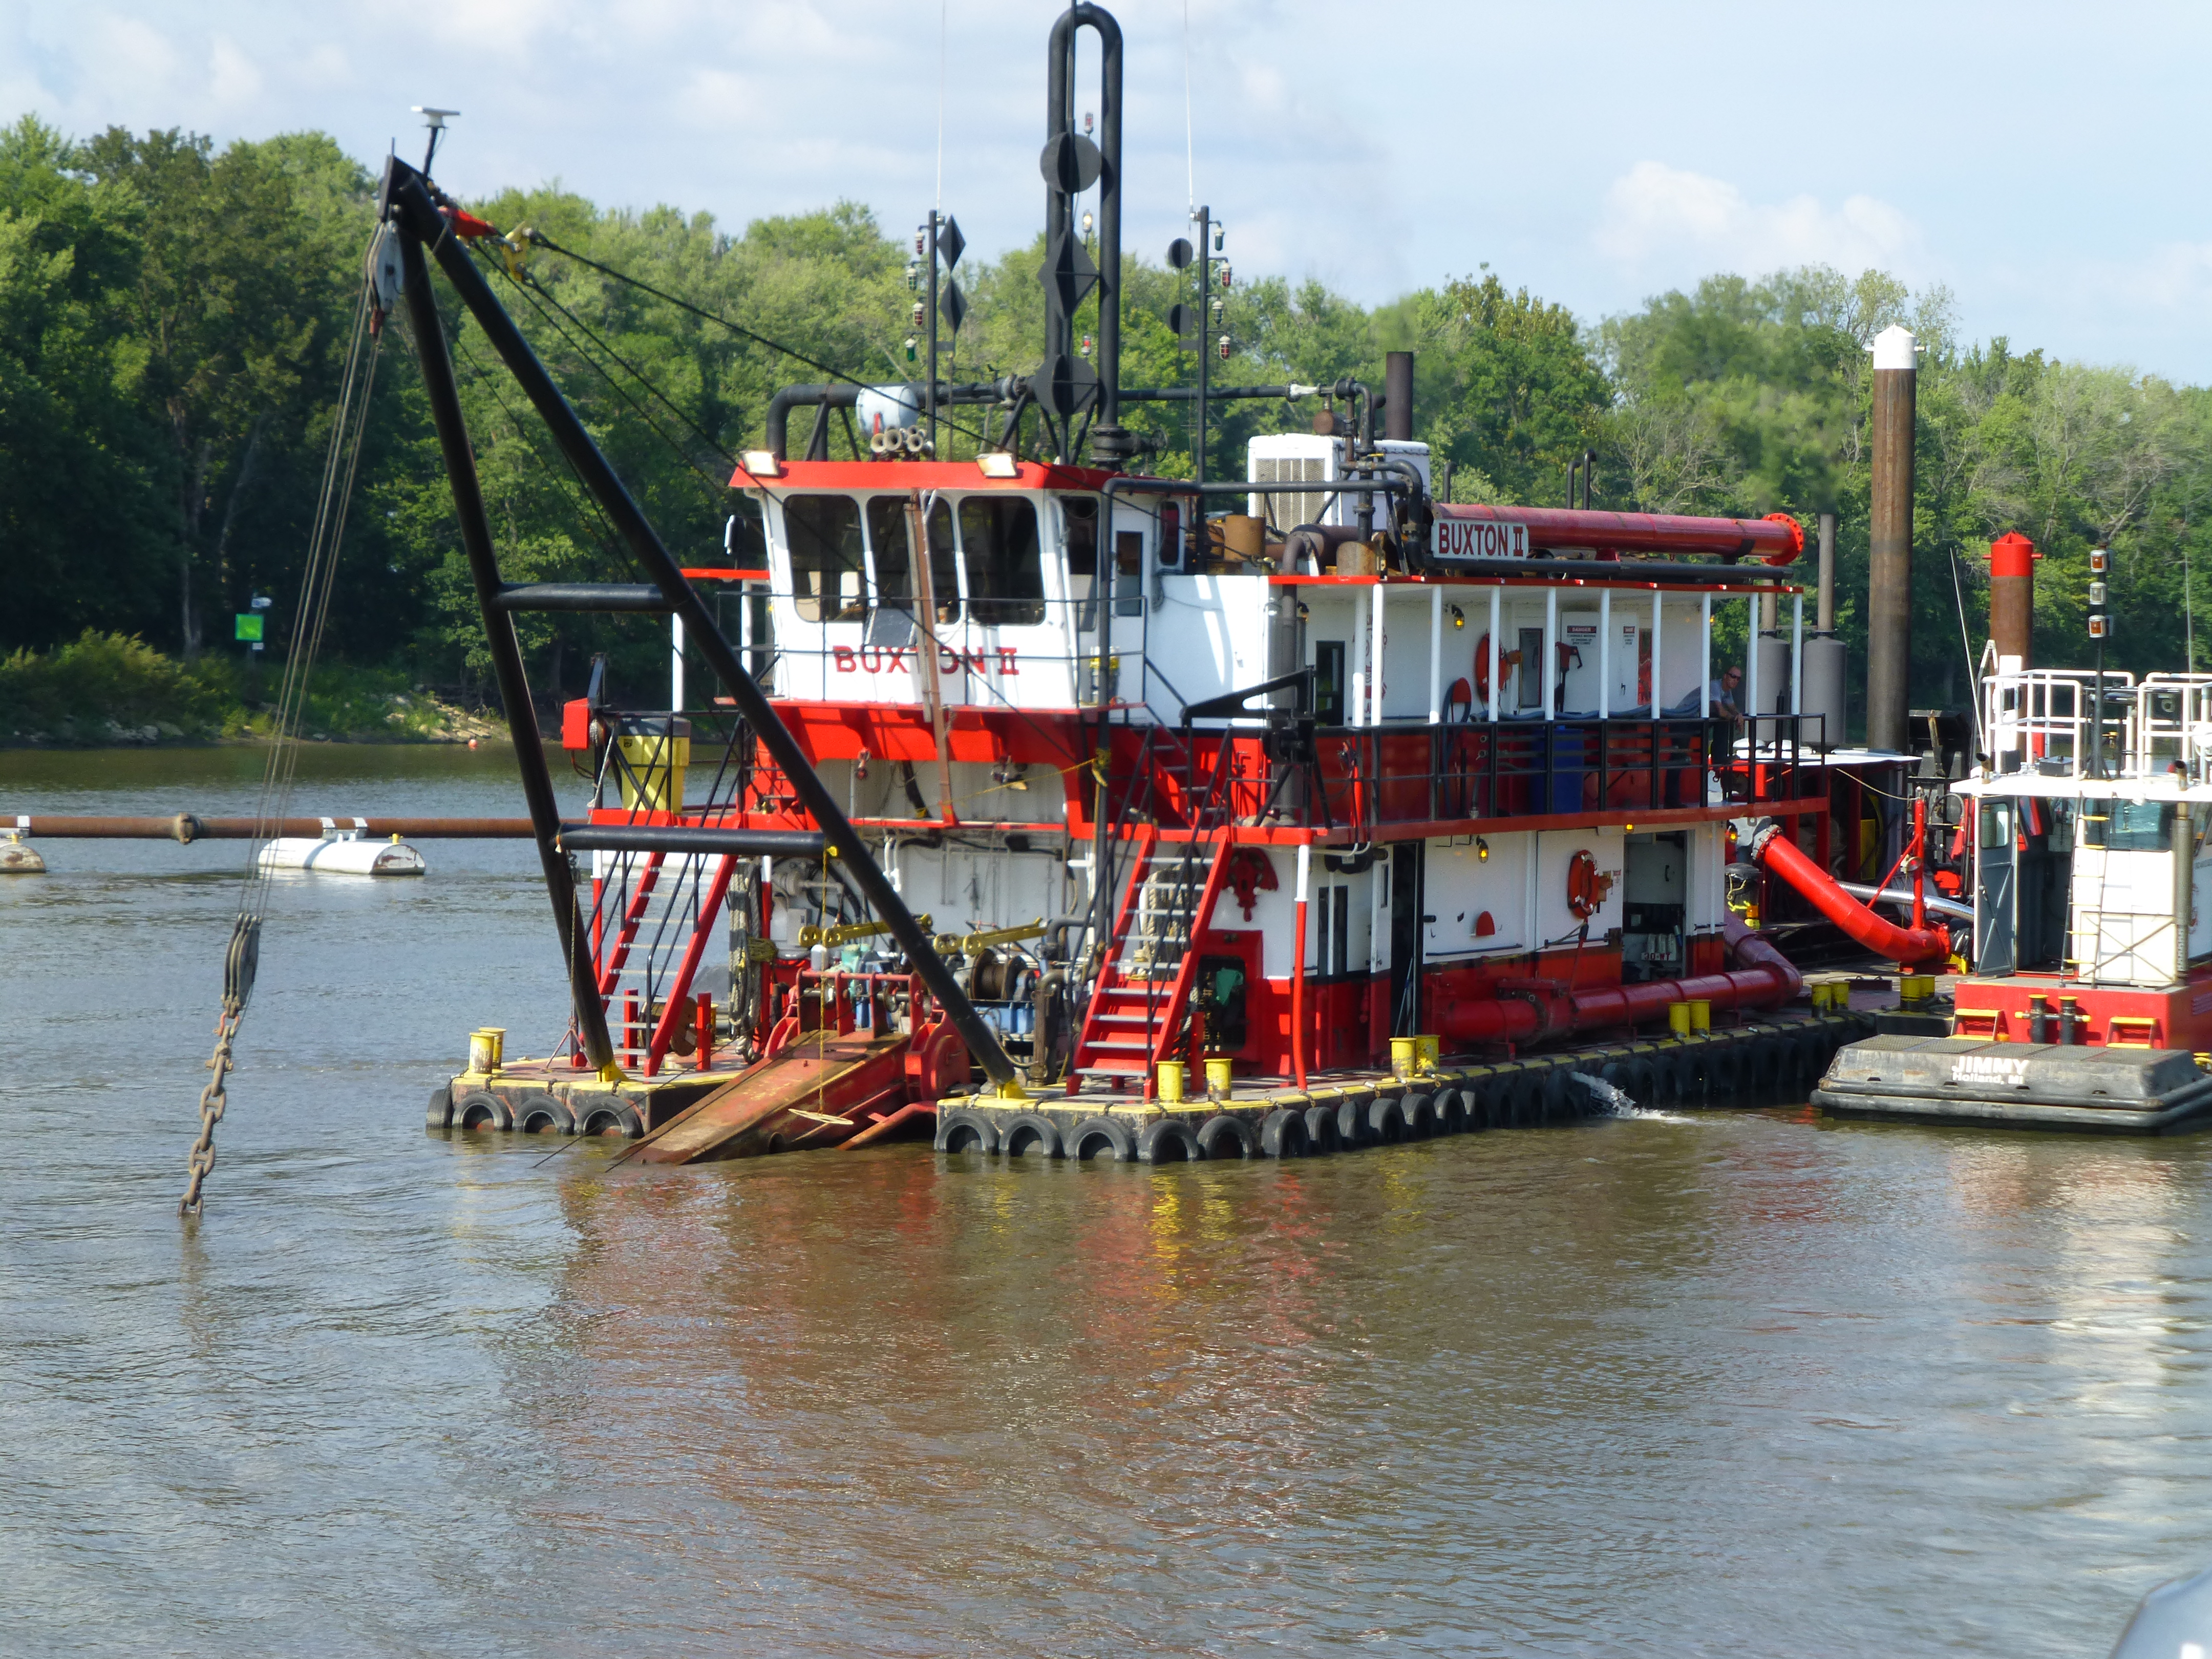 Beardstown, IL and Logstons tug barge